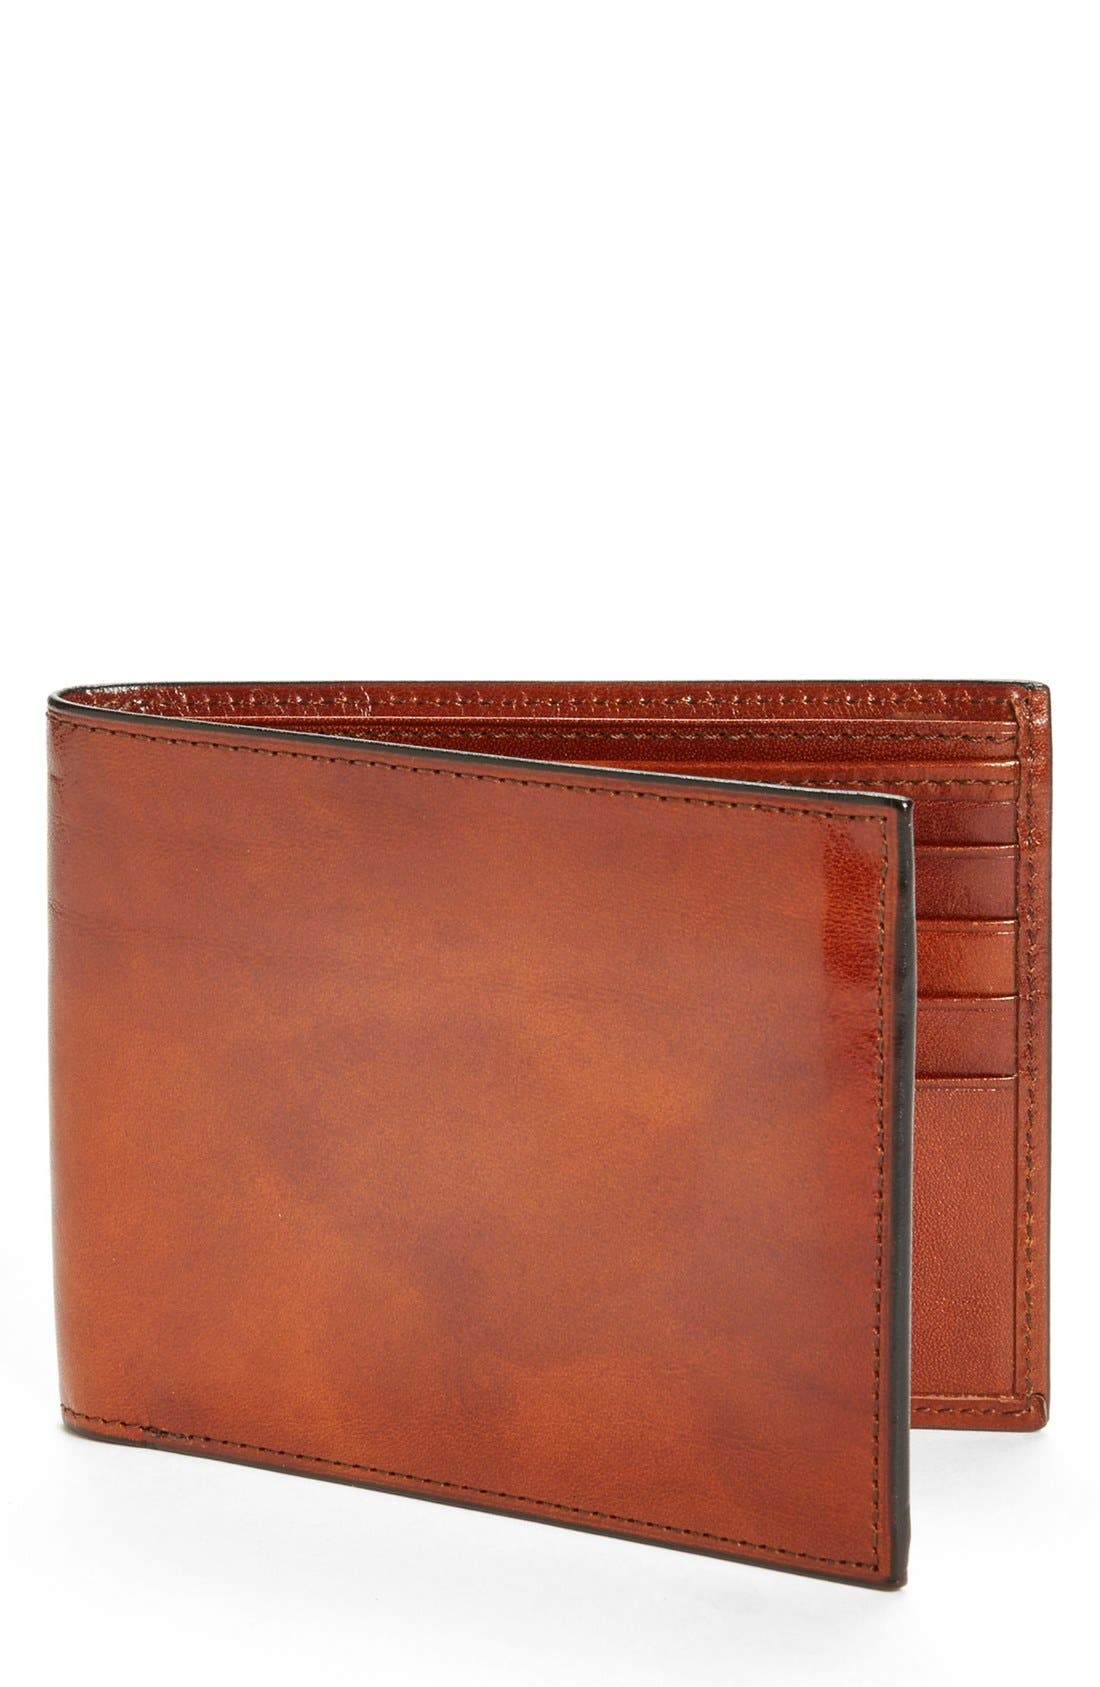 ID Flap Leather Wallet,                         Main,                         color, Amber